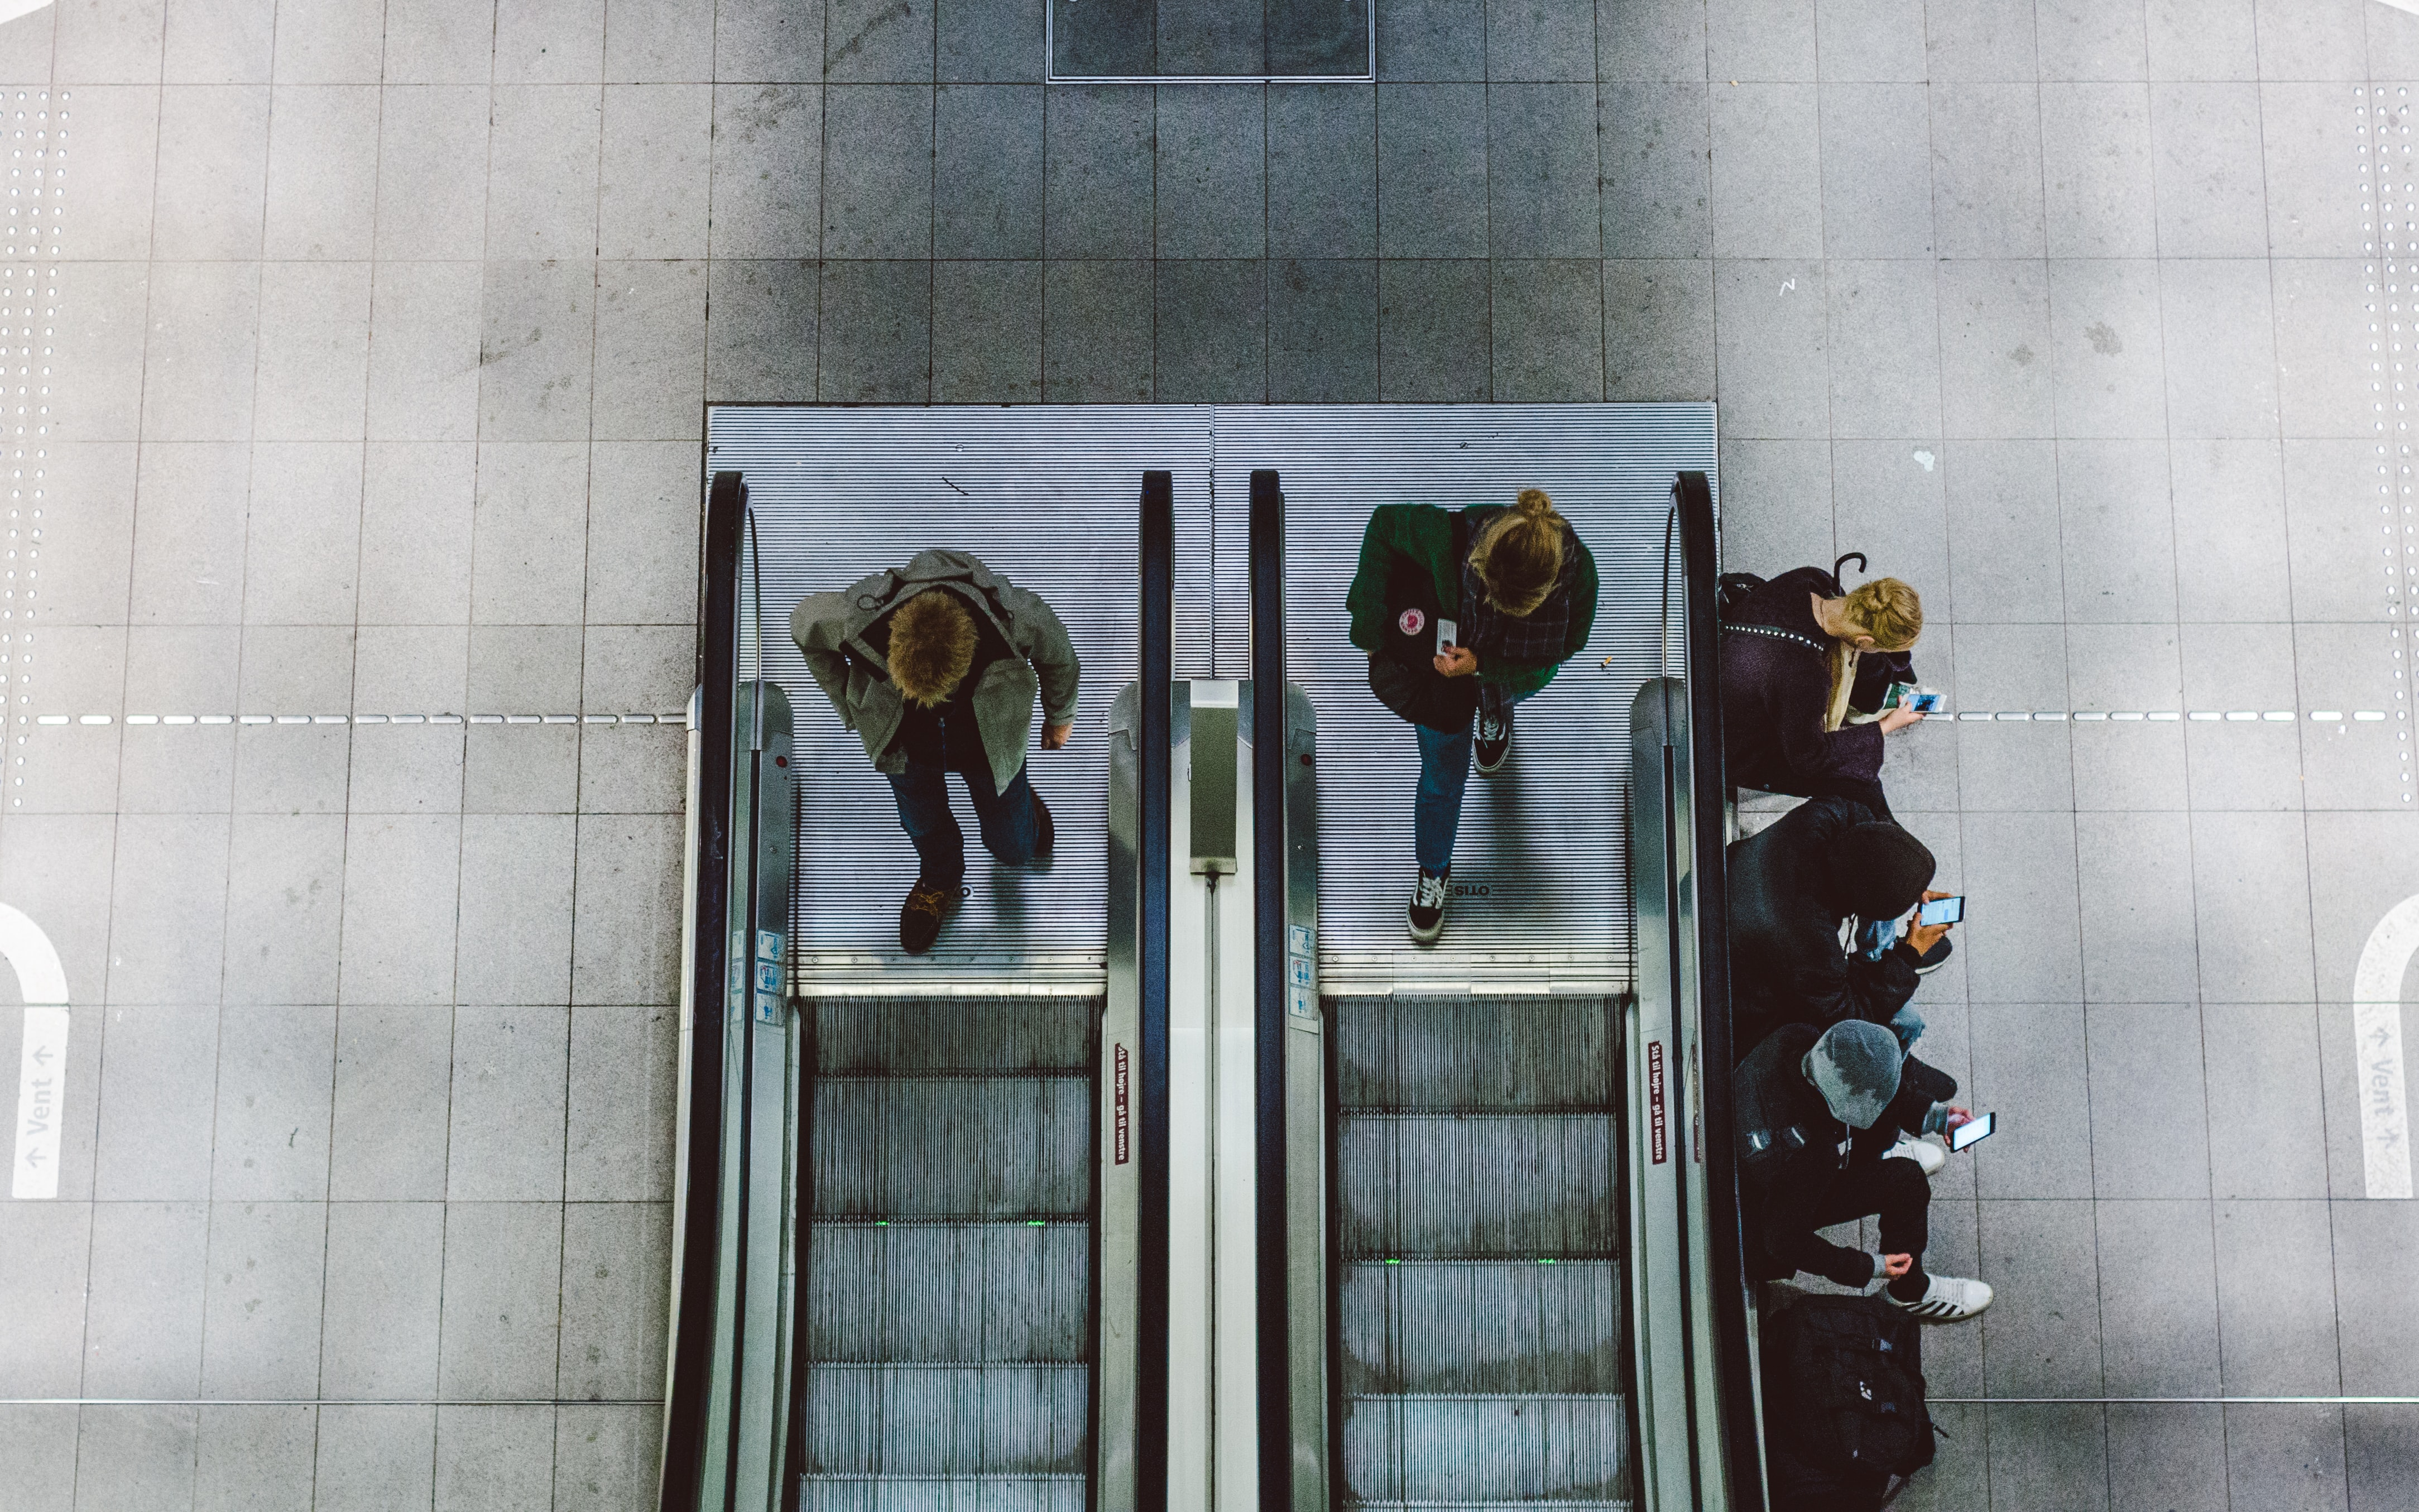 bird's-eye view of escalator